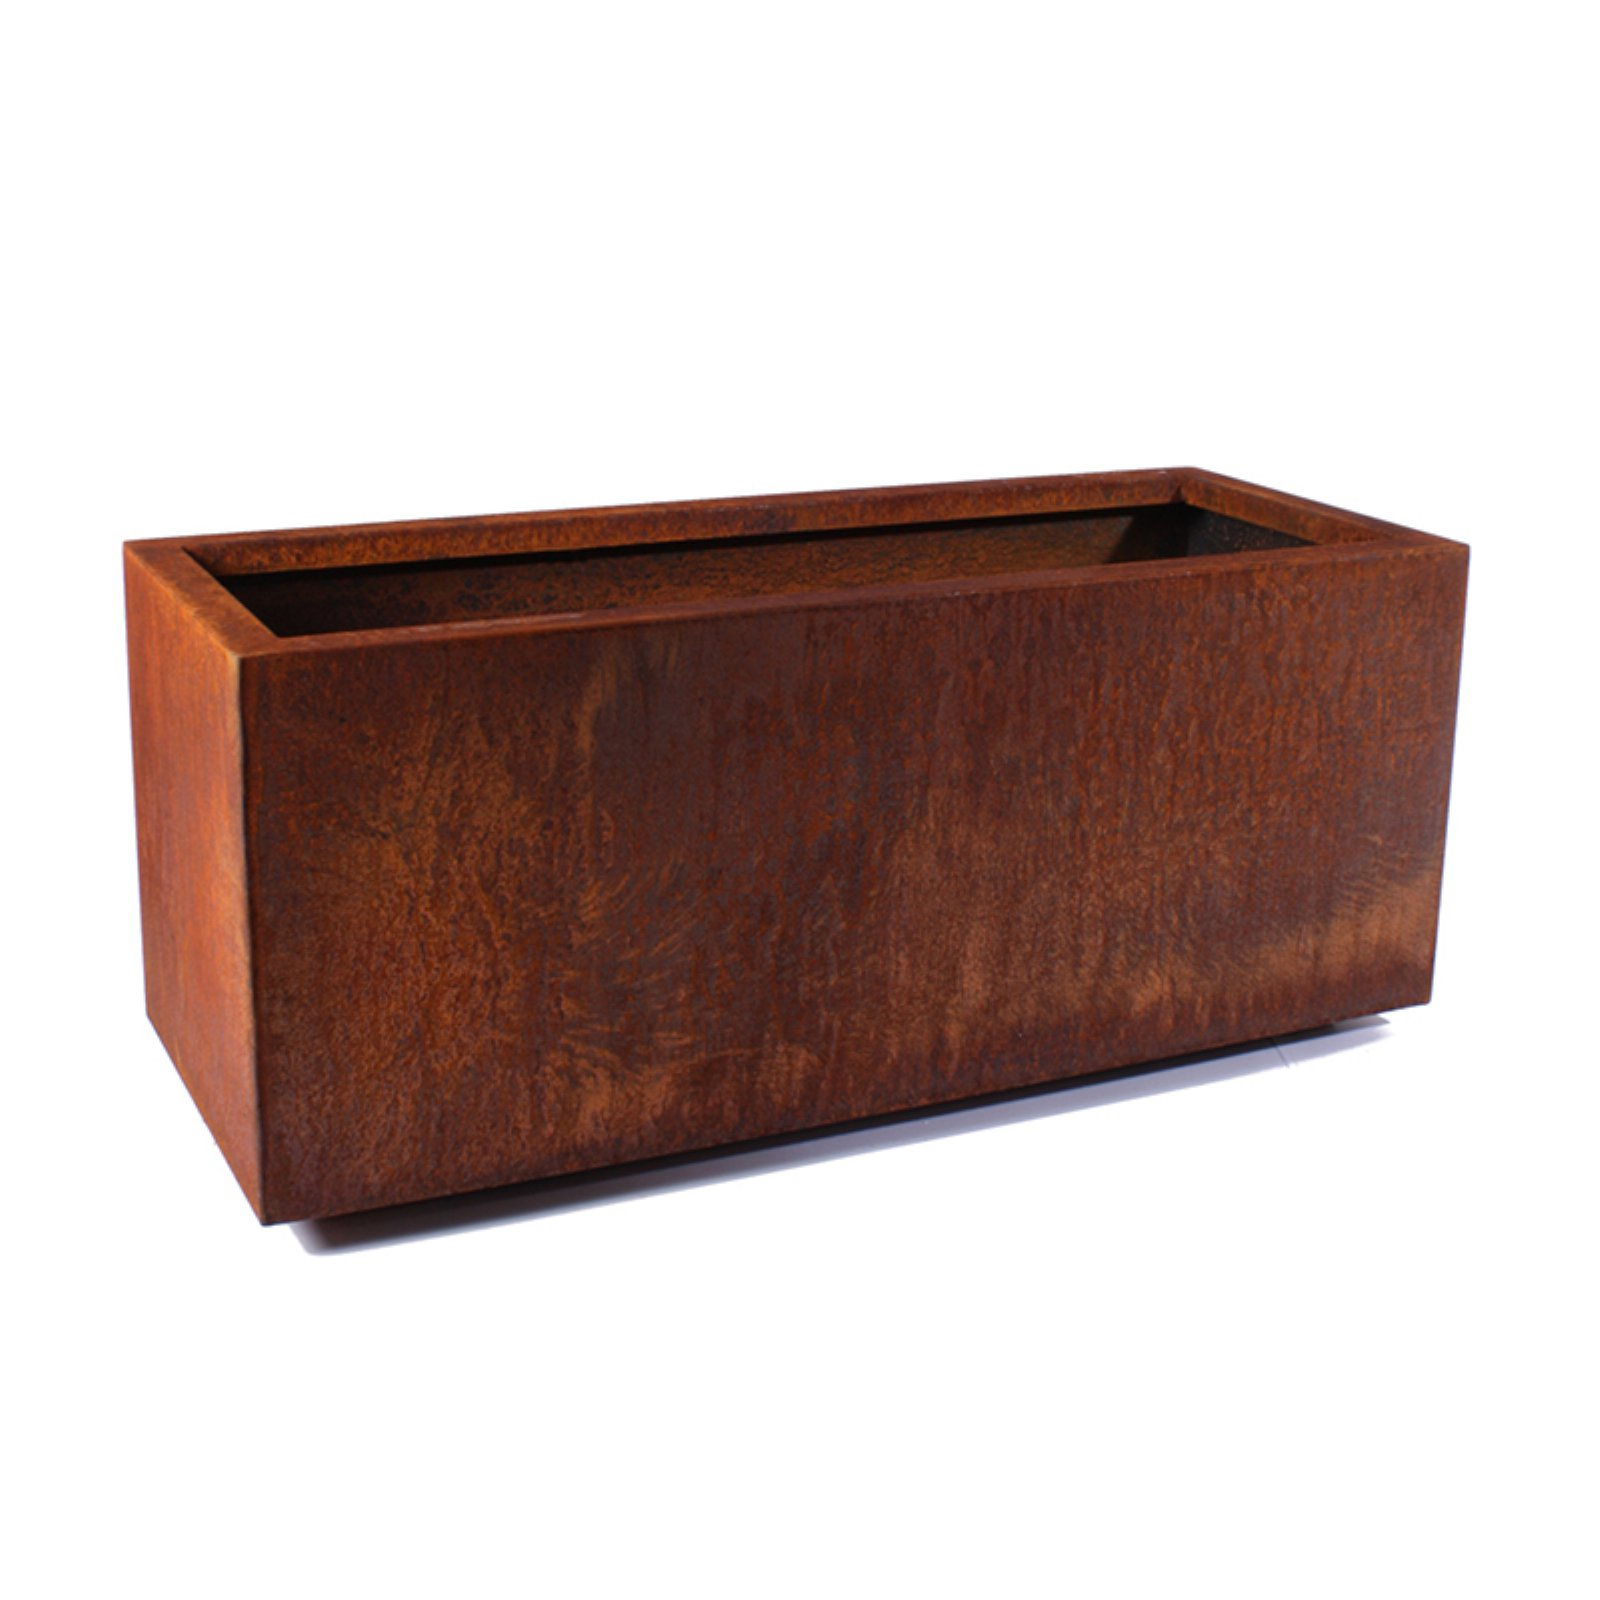 Veradek Metallic Series Long Box Planter Corten Steel by